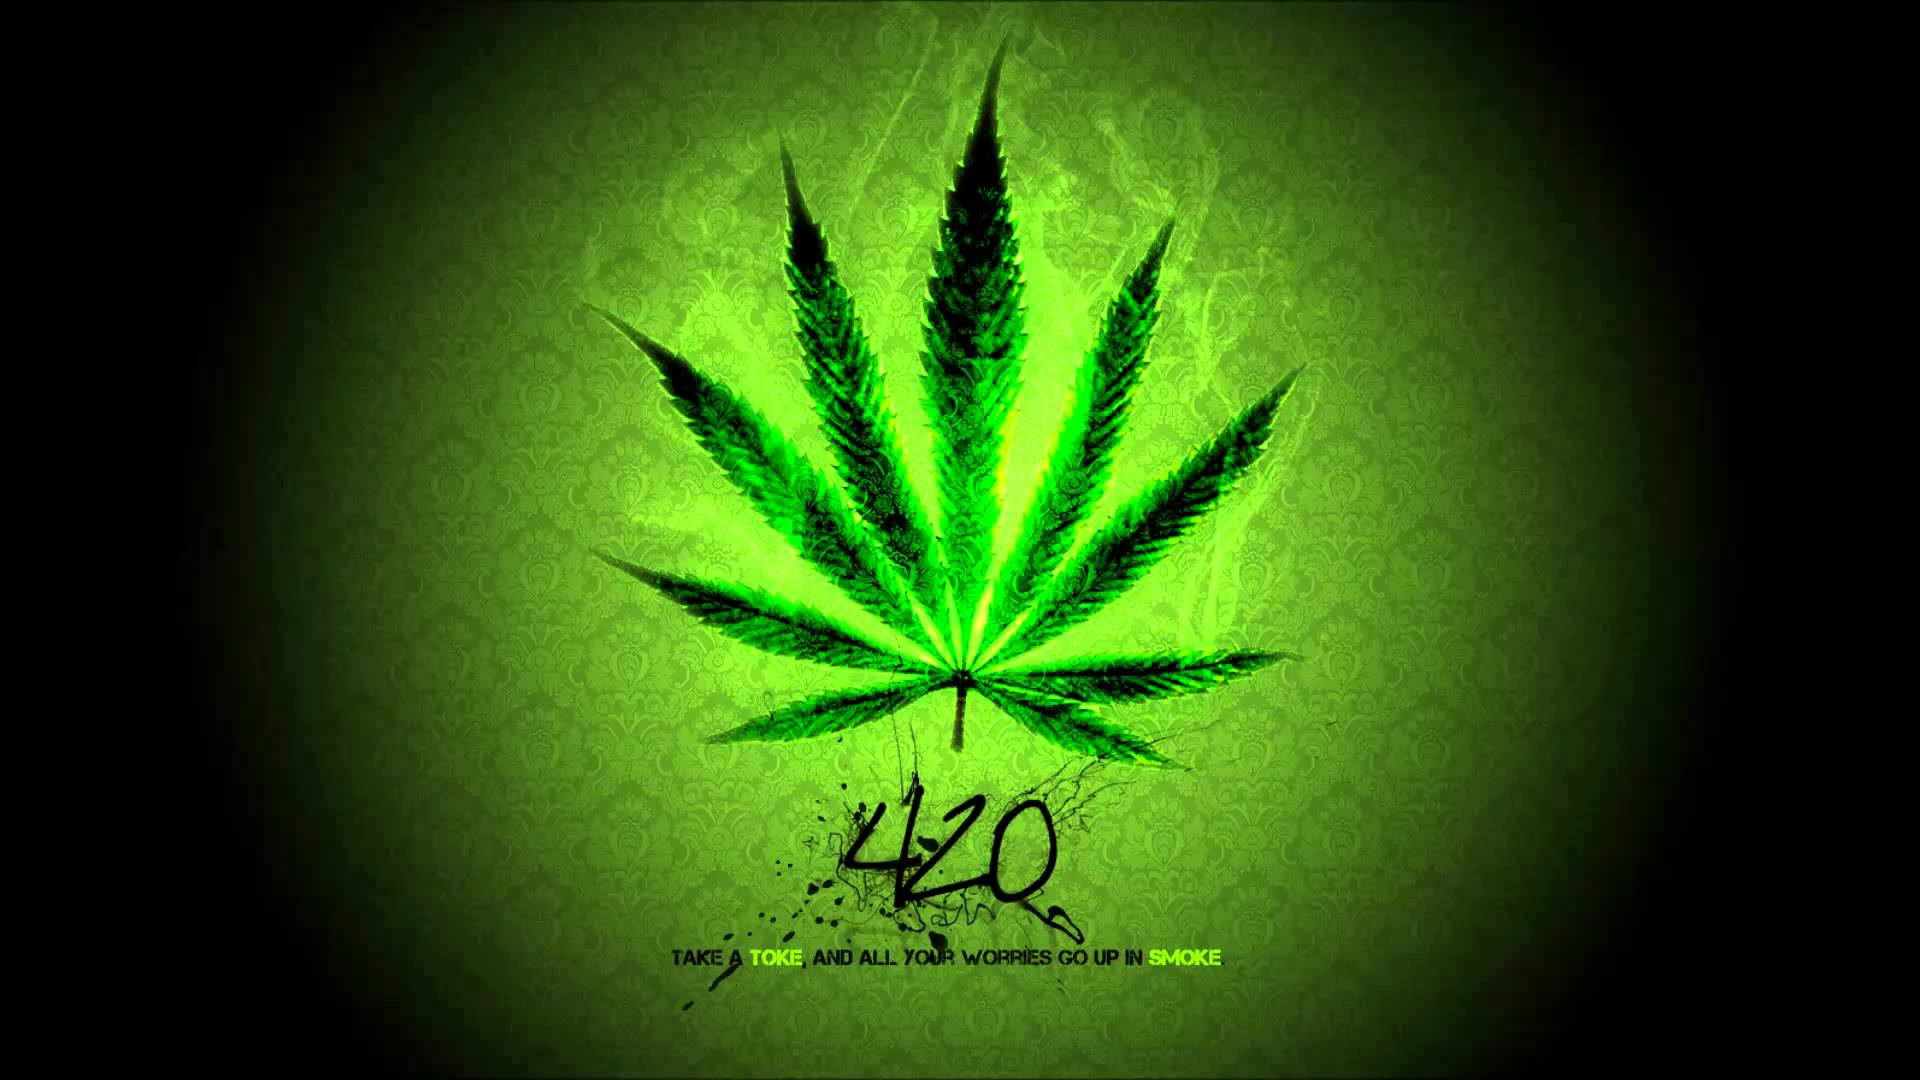 Hd Weed Widescreen 1080p Wallpapers Top Free Hd Weed